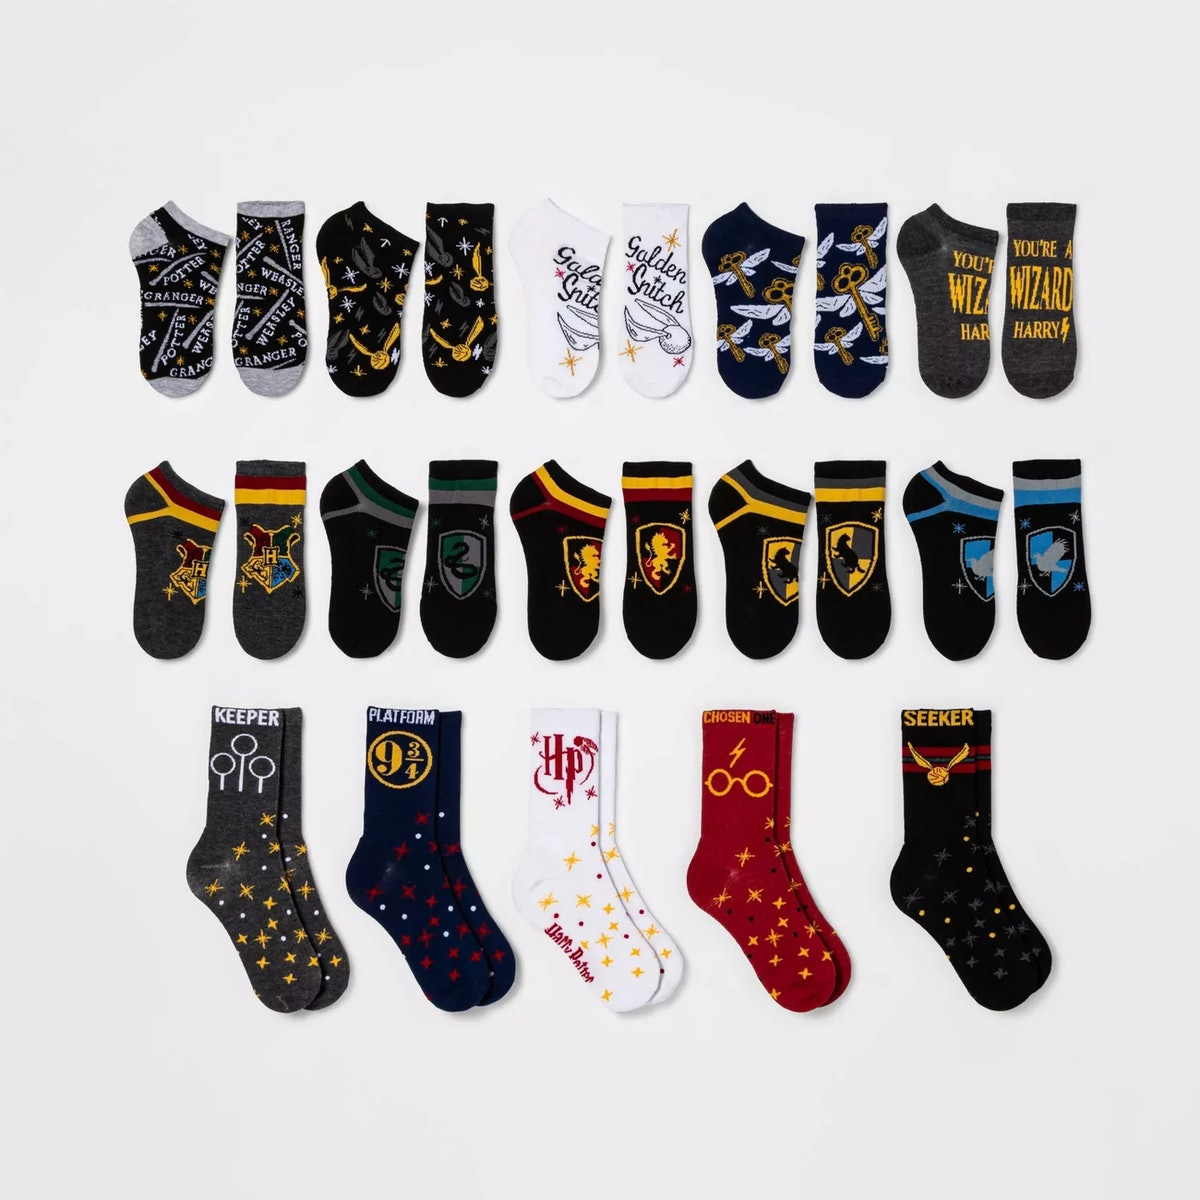 Women's Harry Potter Book Cover 15 Days of Socks Advent Calendar - Assorted Colors 4-10